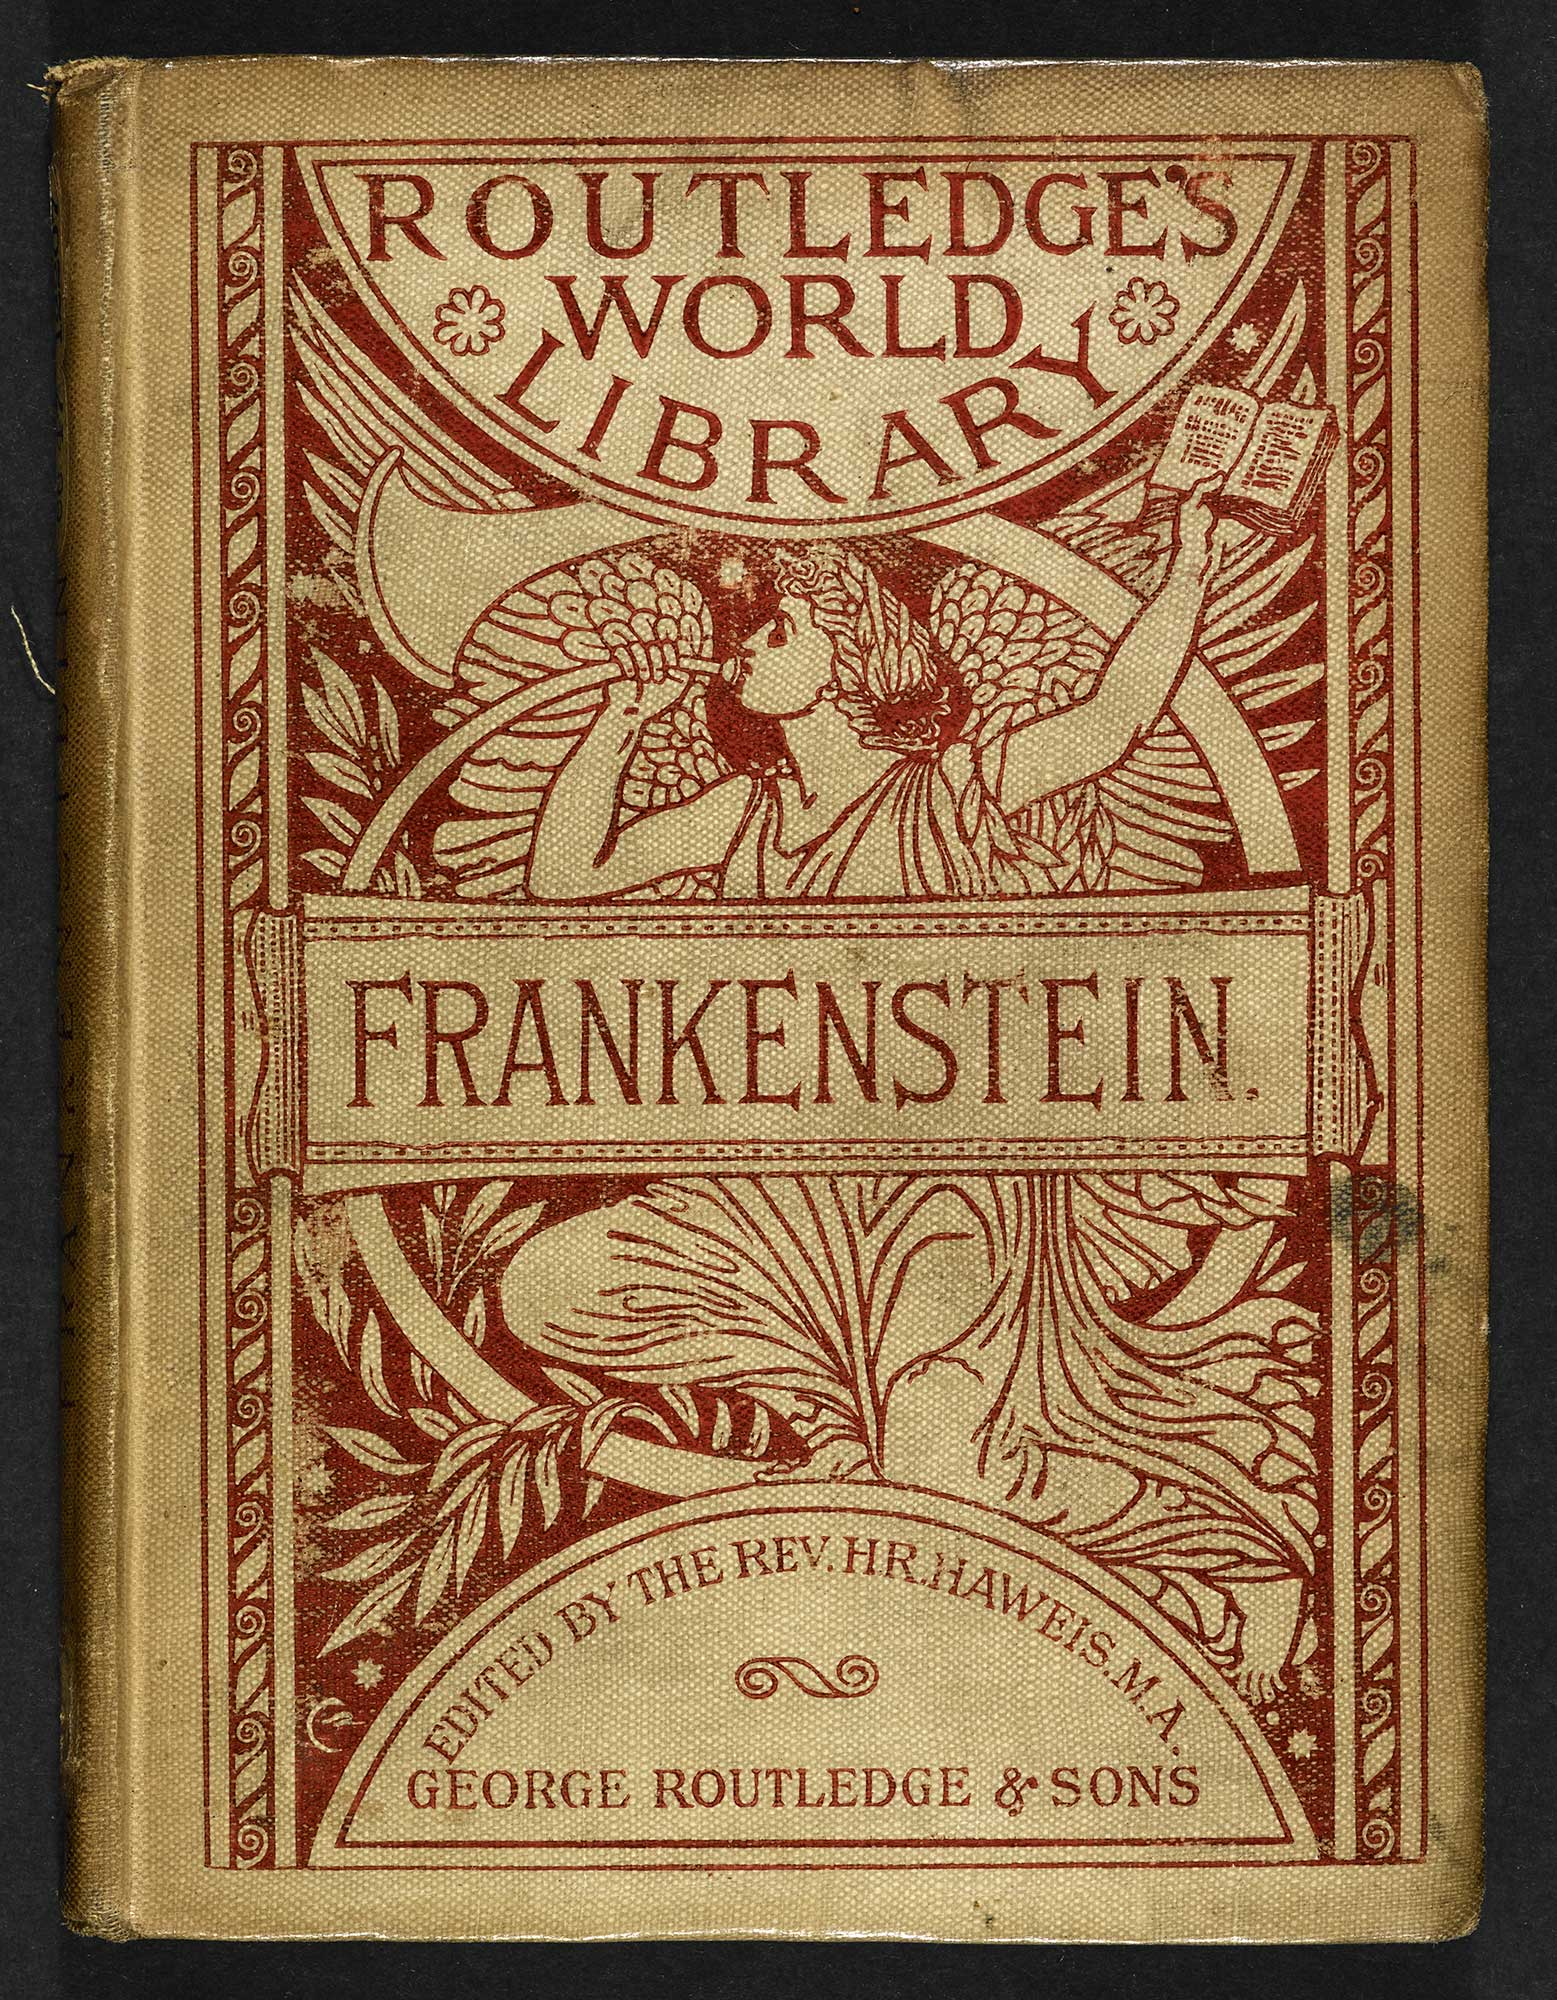 1886 edition of Frakenstein by Mary Shelley [page: front cover]